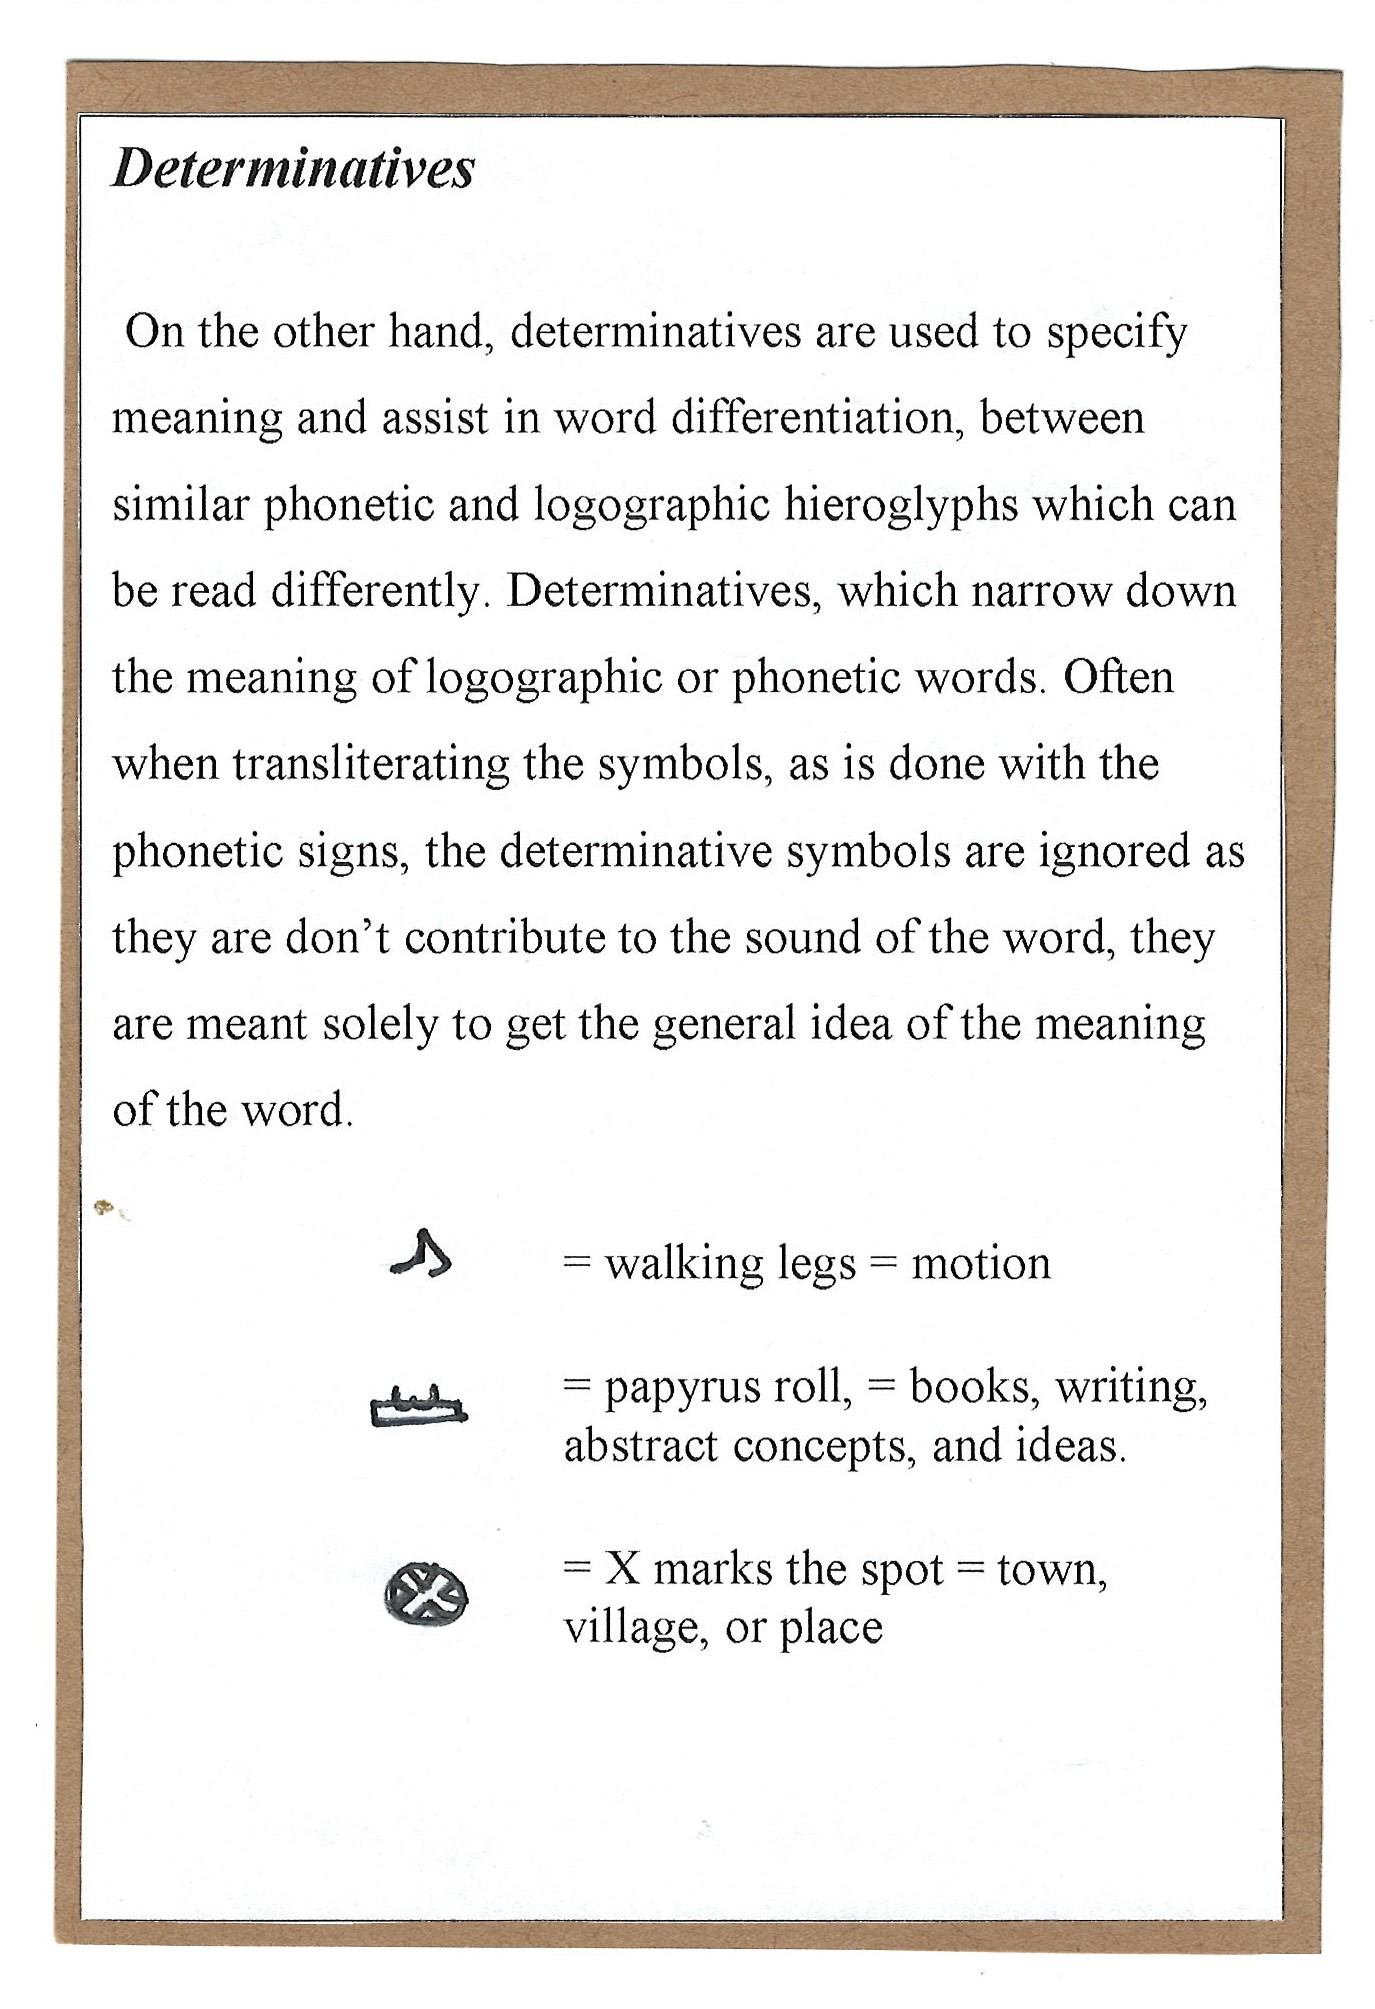 Page 4. Determinatives, and the way these signs allow for the readability of this vastly symbolic language.